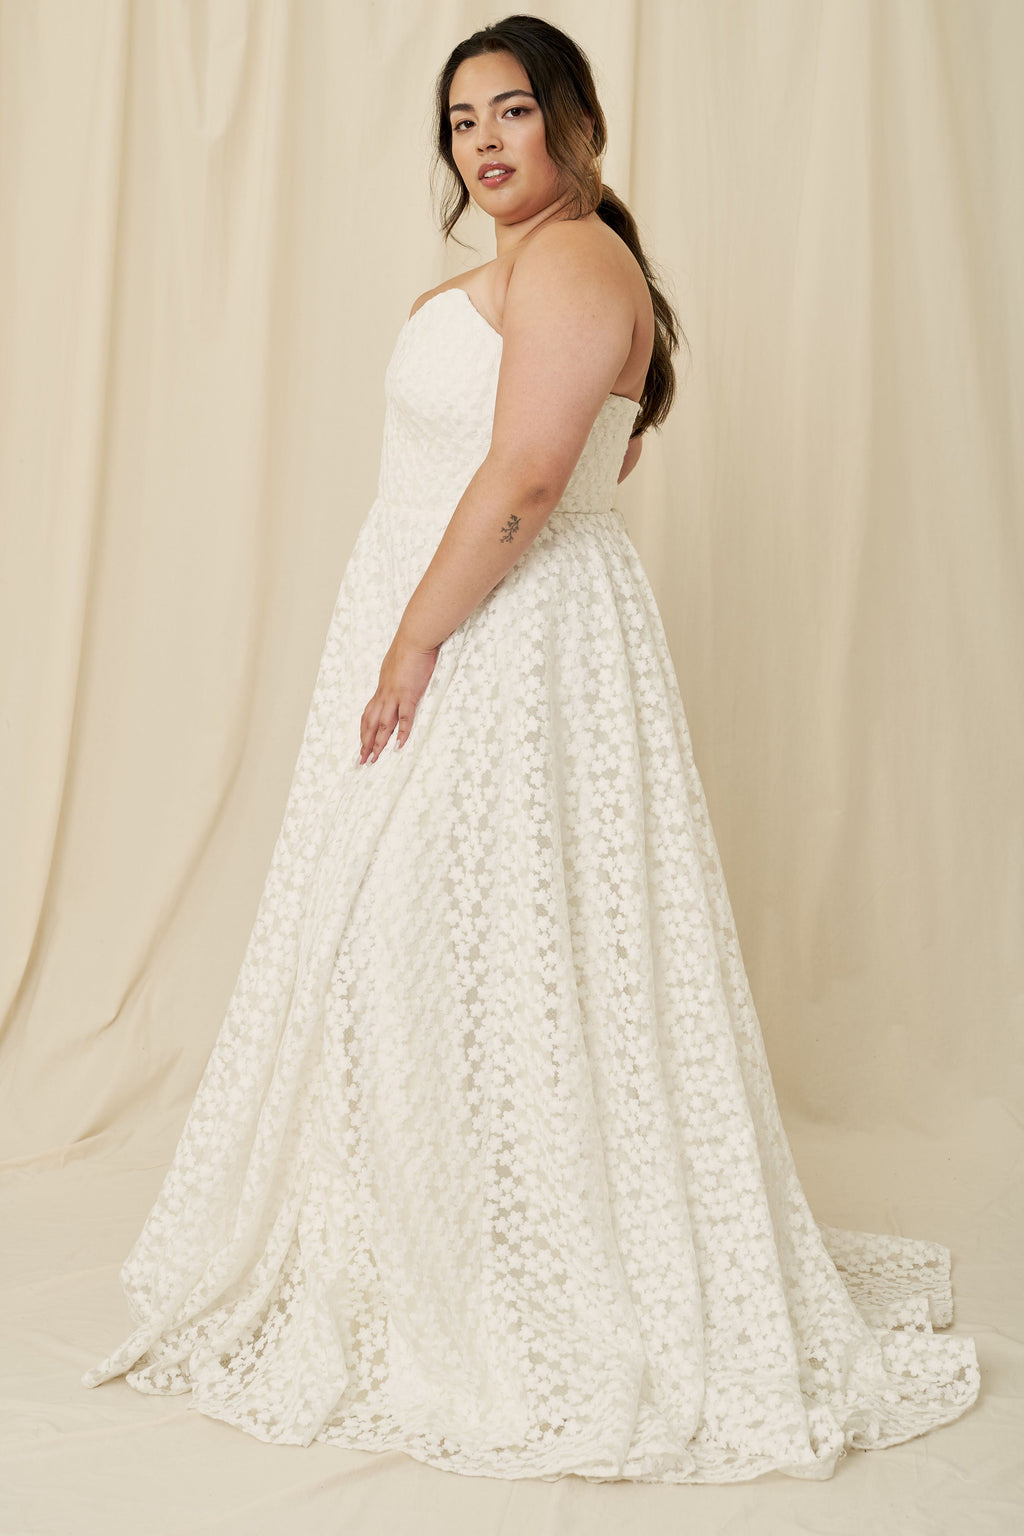 A plus size wedding dress with a strapless silhouette, corset back tie, and all-over floral daisy lace